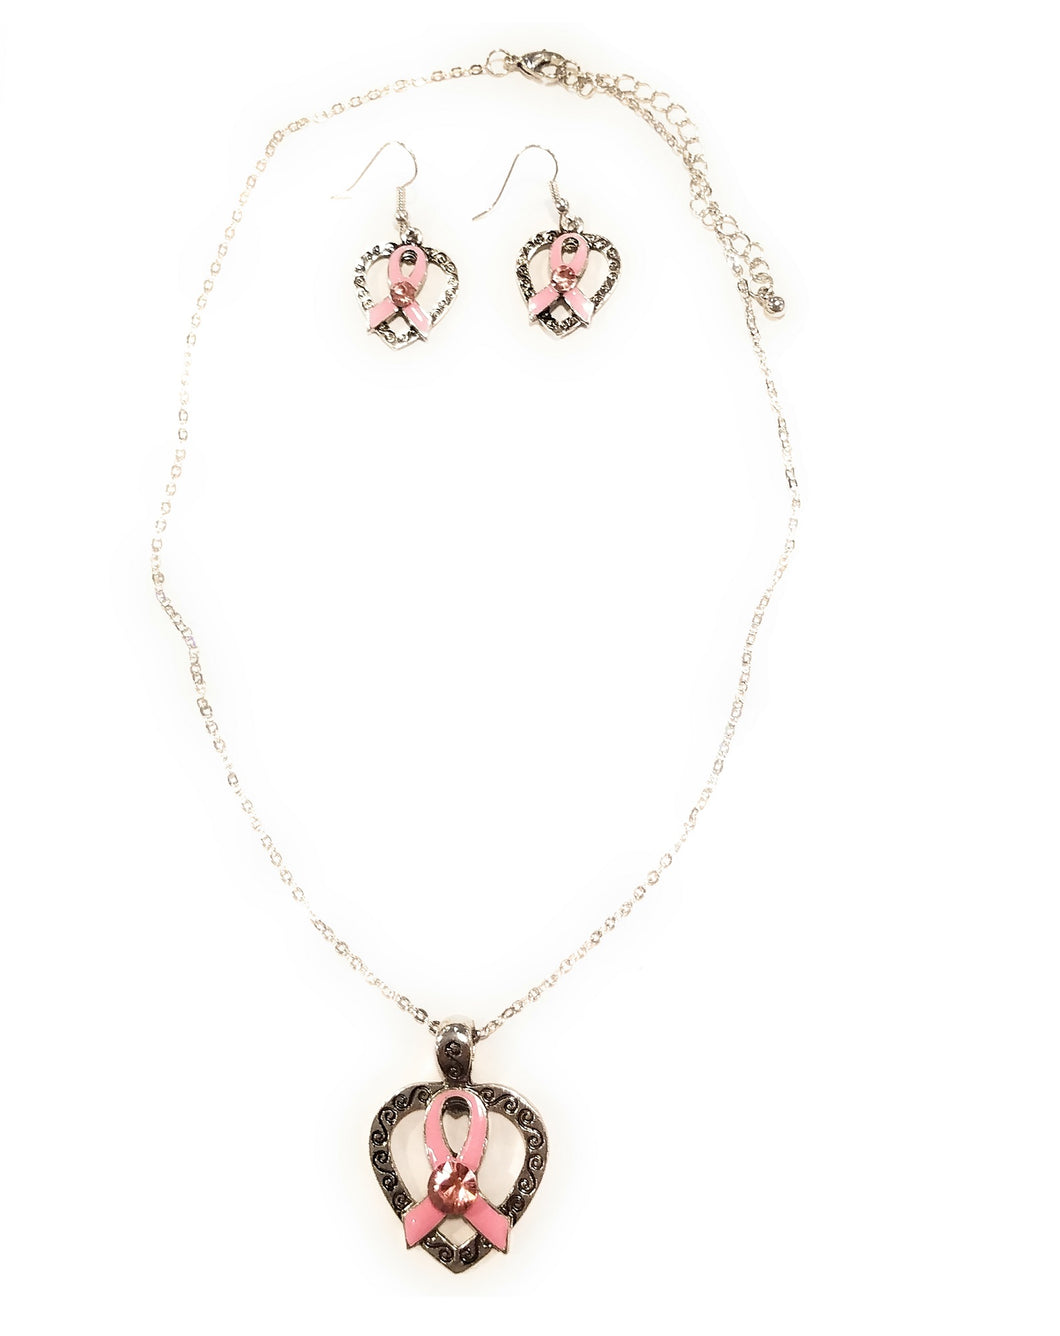 Bling Rhinestone Pink Ribbon Breast Cancer Awareness Heart Necklace Earrings Set Silver Tone 17